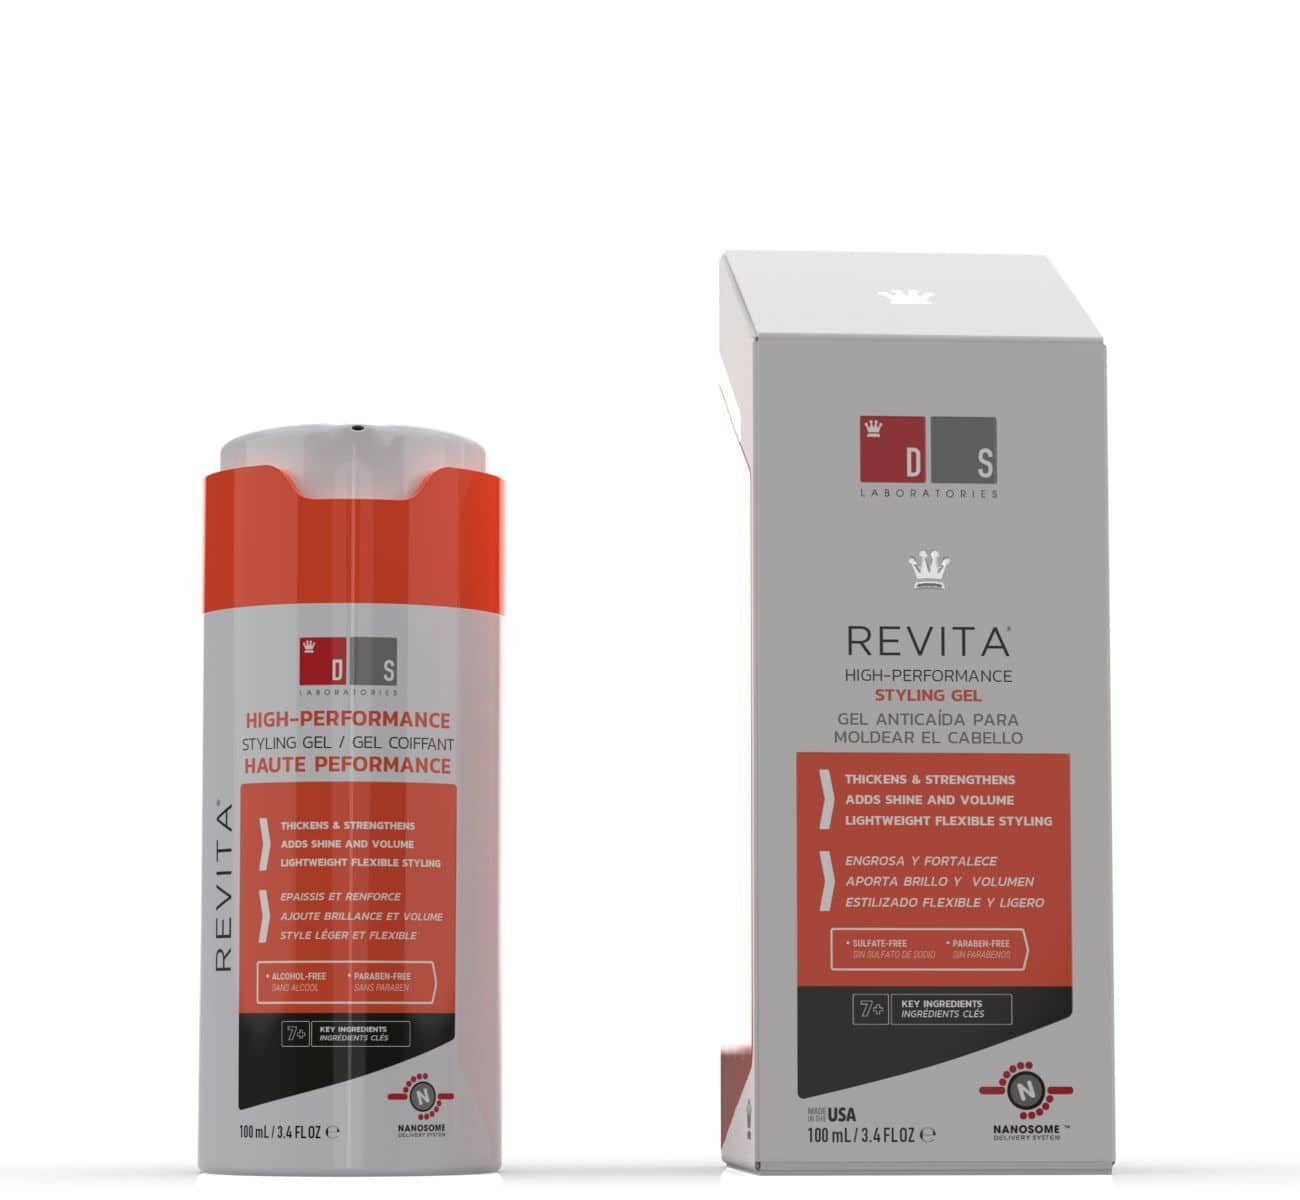 Revita | High-Performance Styling Gel